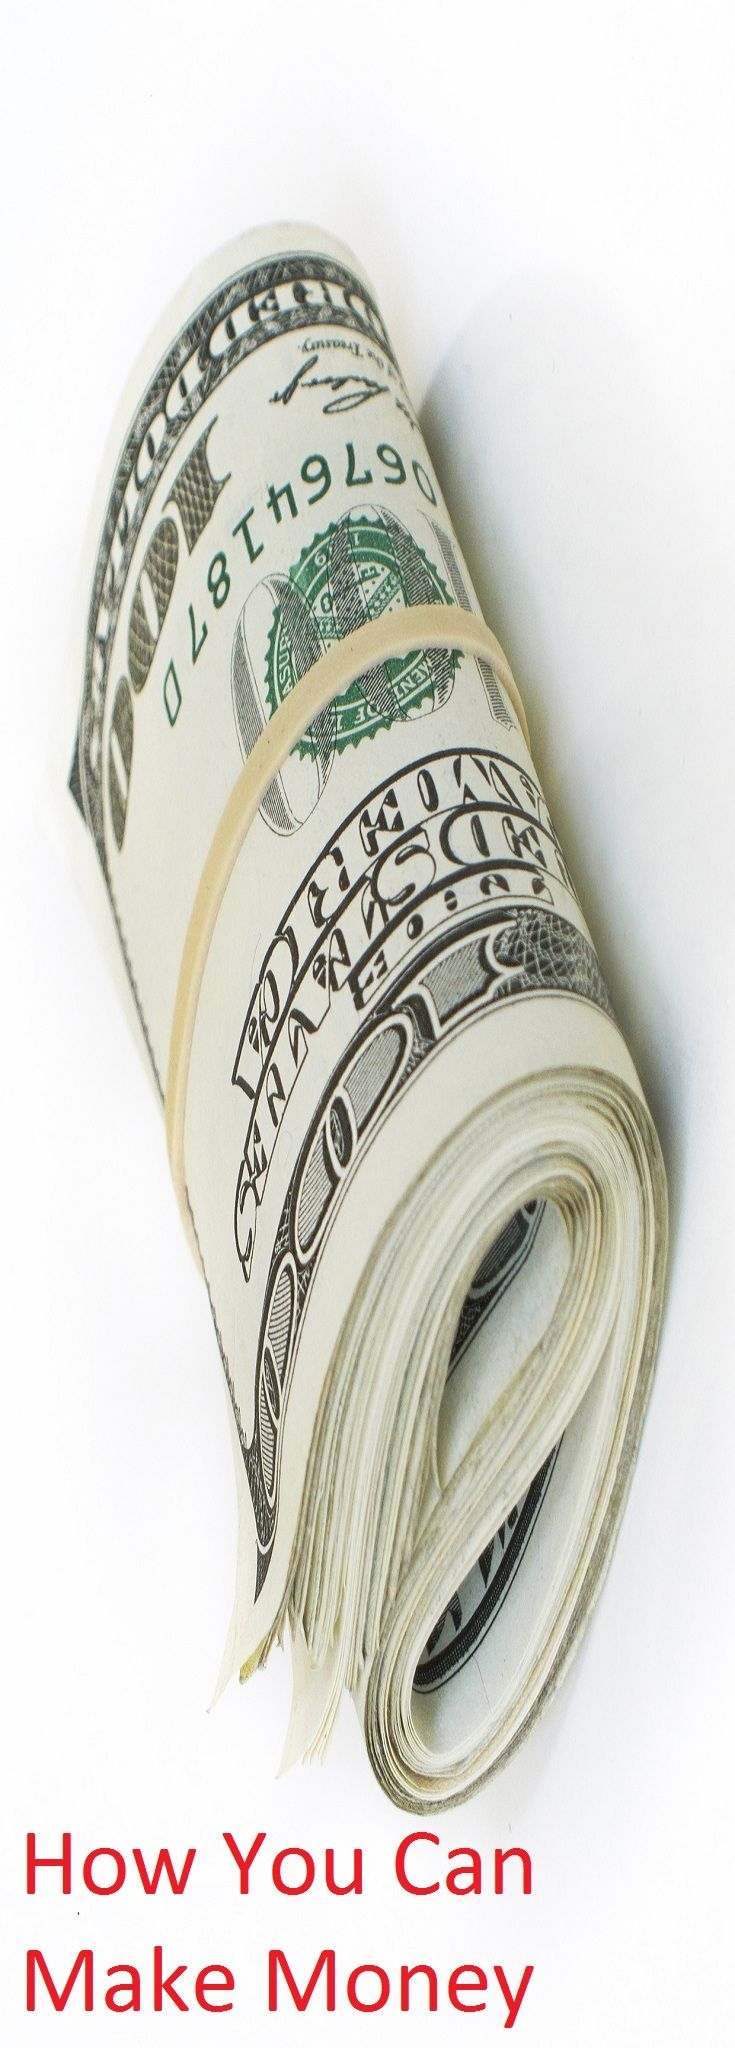 How You Can Make Money .How You Can Make Money How You Can Make Money Do you want to make money quick? In this...